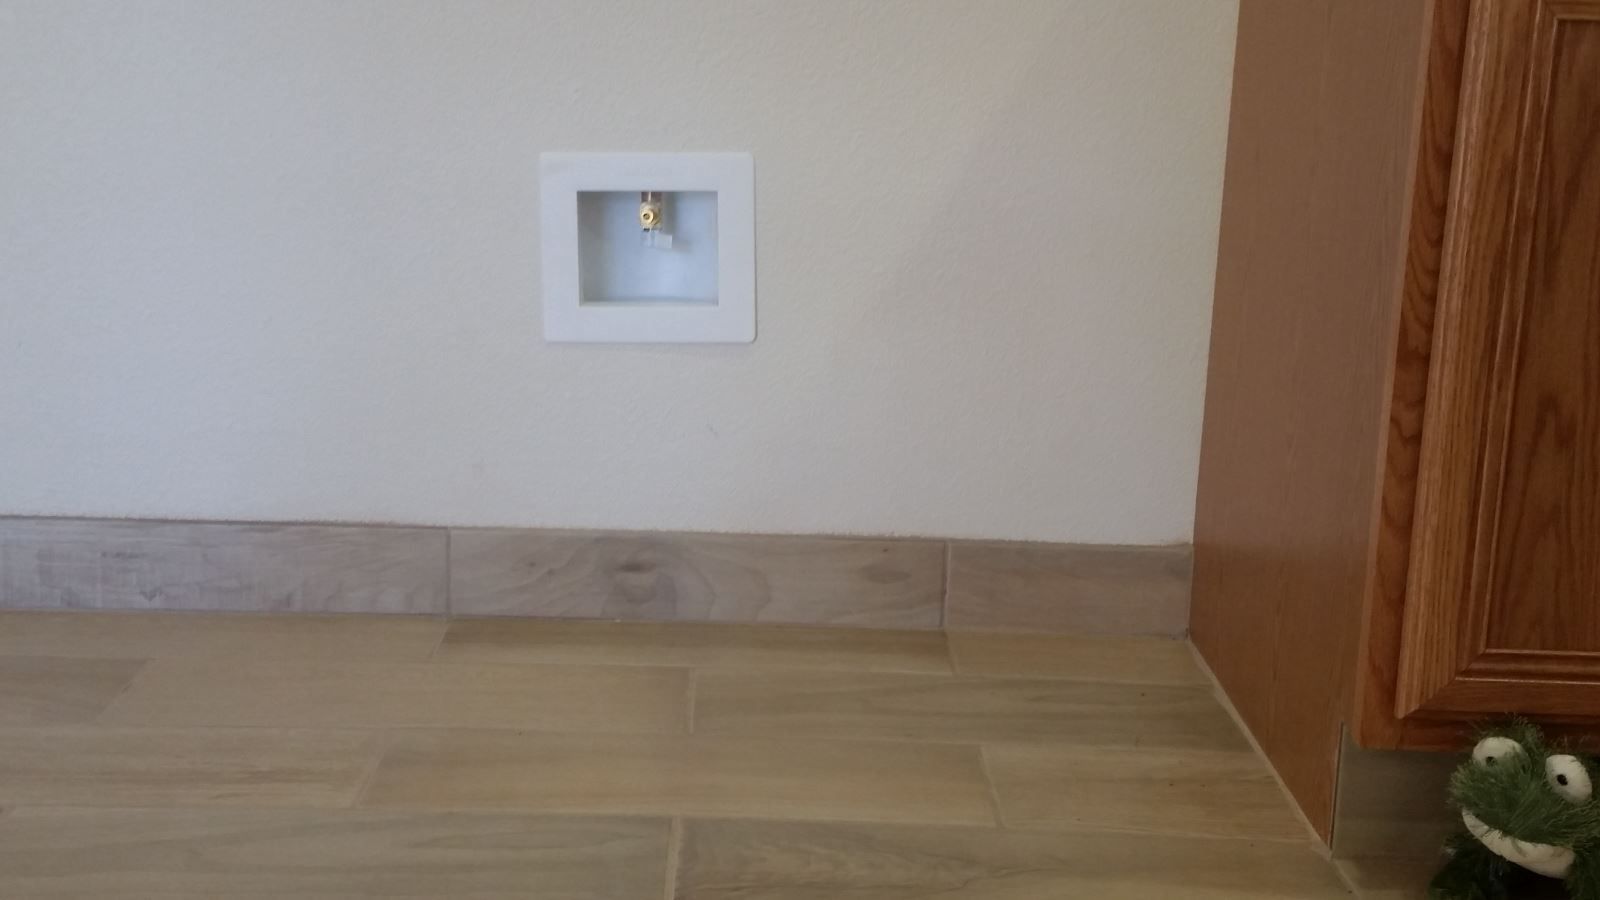 Tile floor wood baseboard httpnextsoft21 pinterest wood tile floor wood baseboard dailygadgetfo Image collections